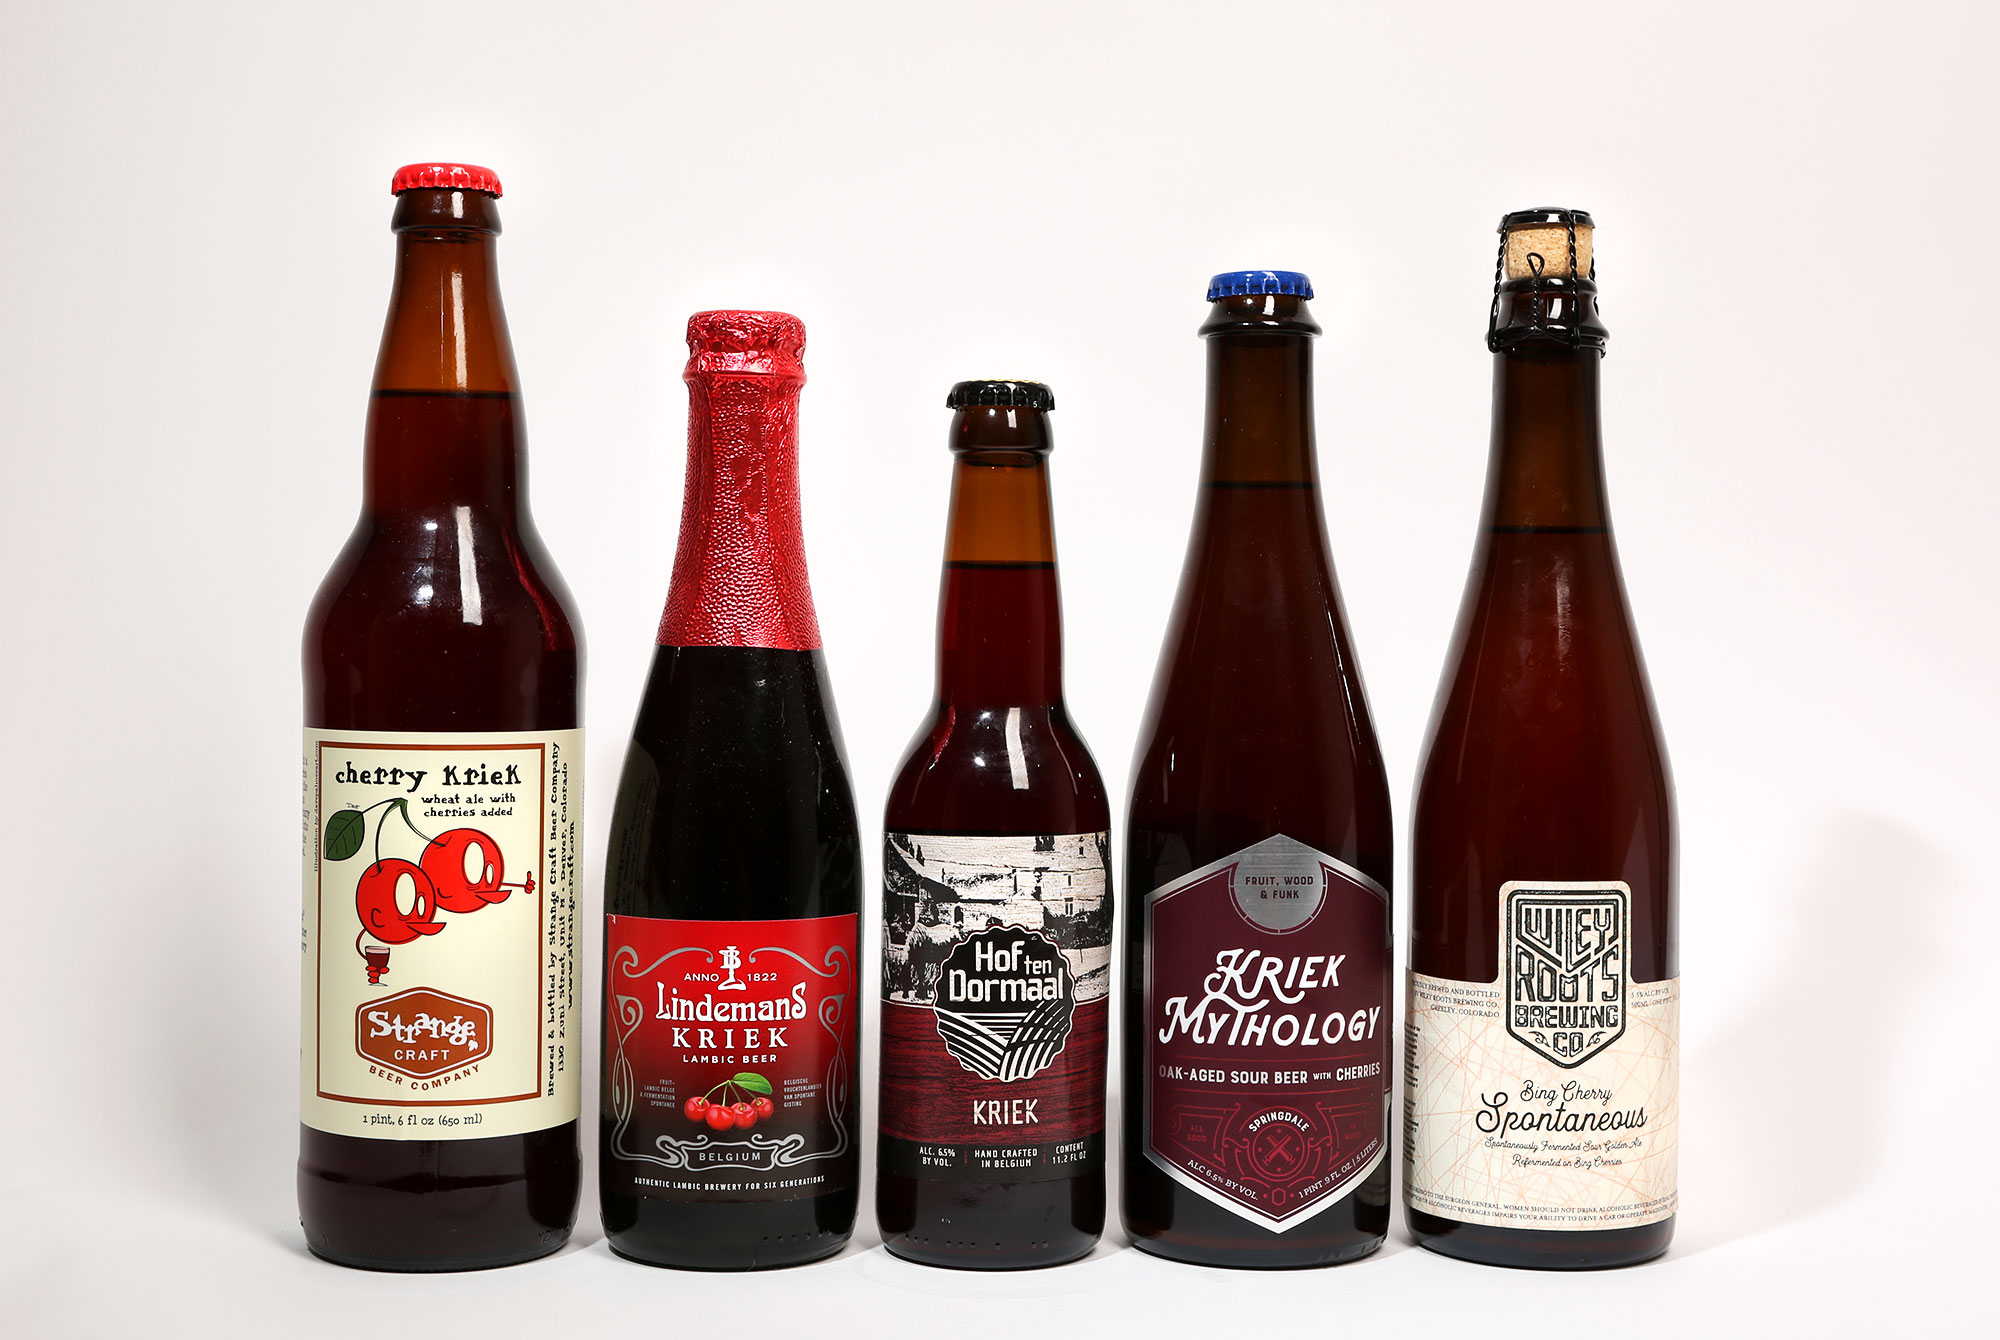 What Is a Kriek Beer?